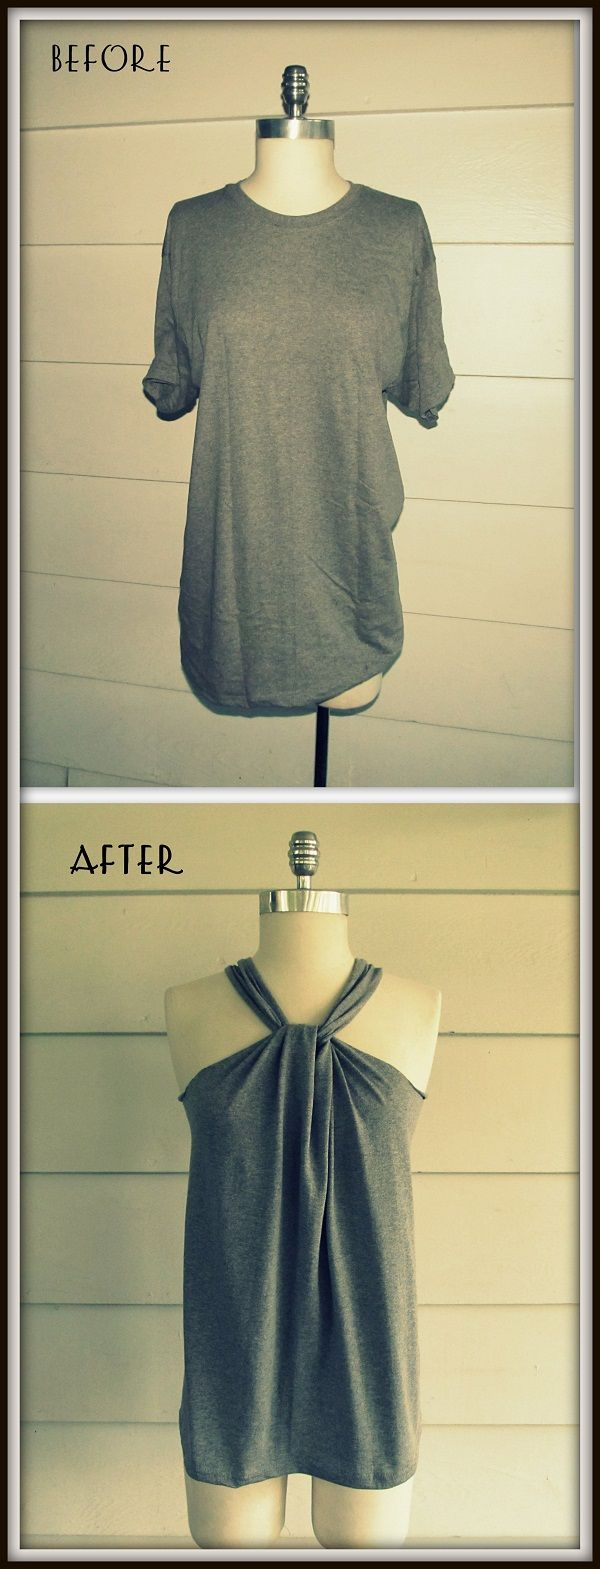 Make Amazing Tops & Blouses With These 20 Simple DIY Ideas ...